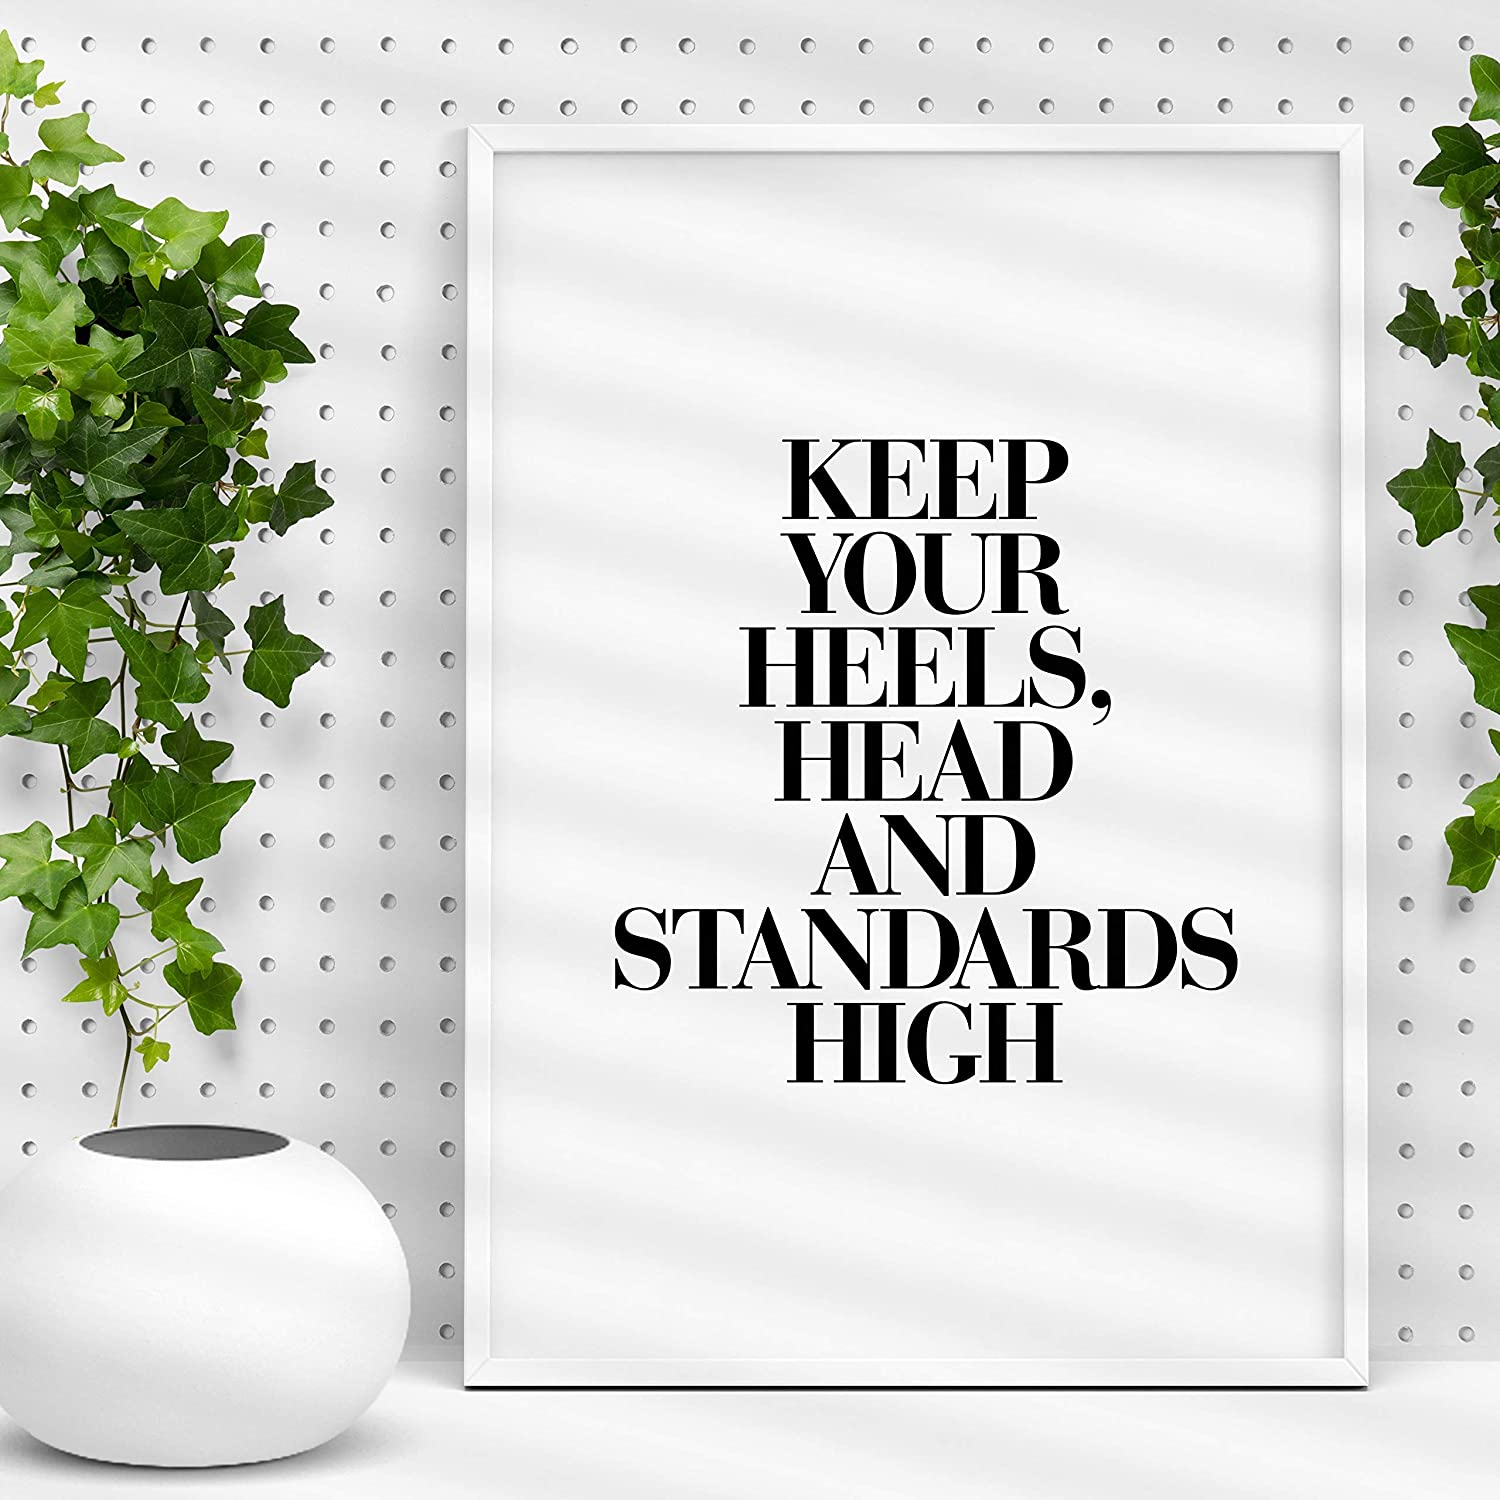 569cb6aa69476 Keep Your Heels, Head and Standards High - Coco Chanel Inspirational Print  Home Decor Typography Poster Black and White Wall Art